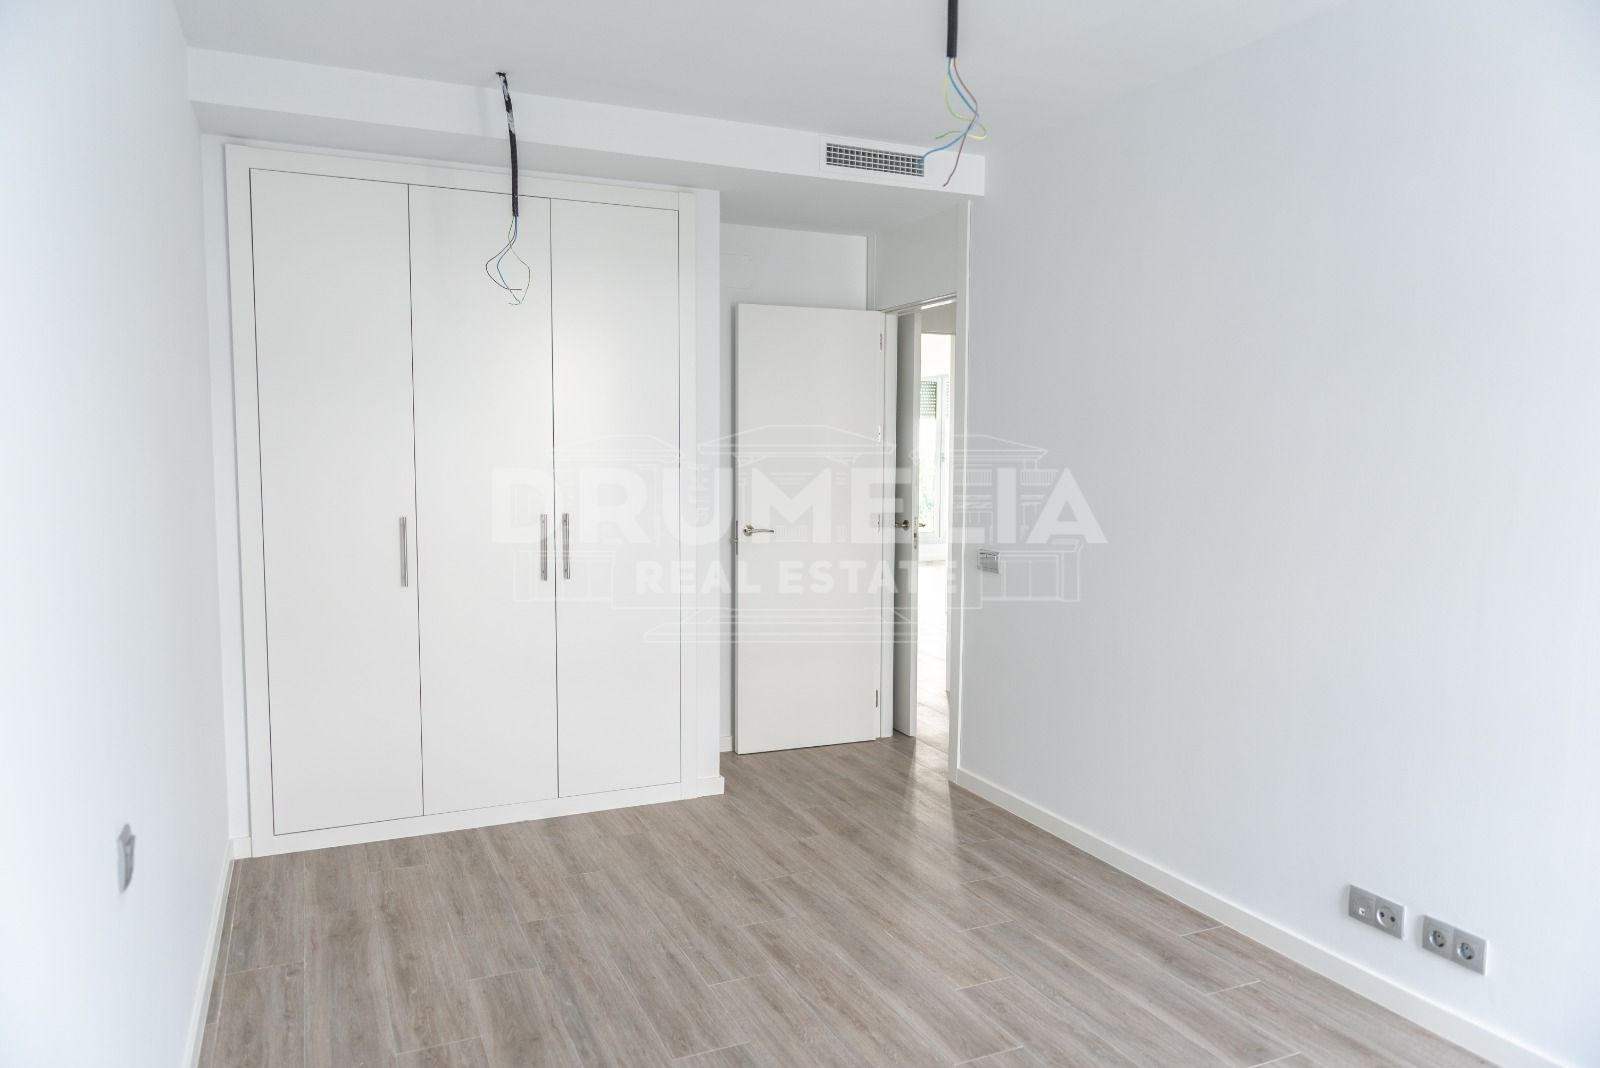 Estepona, Brand - New Ground Floor Modern Apartment, Cancelada, Estepona